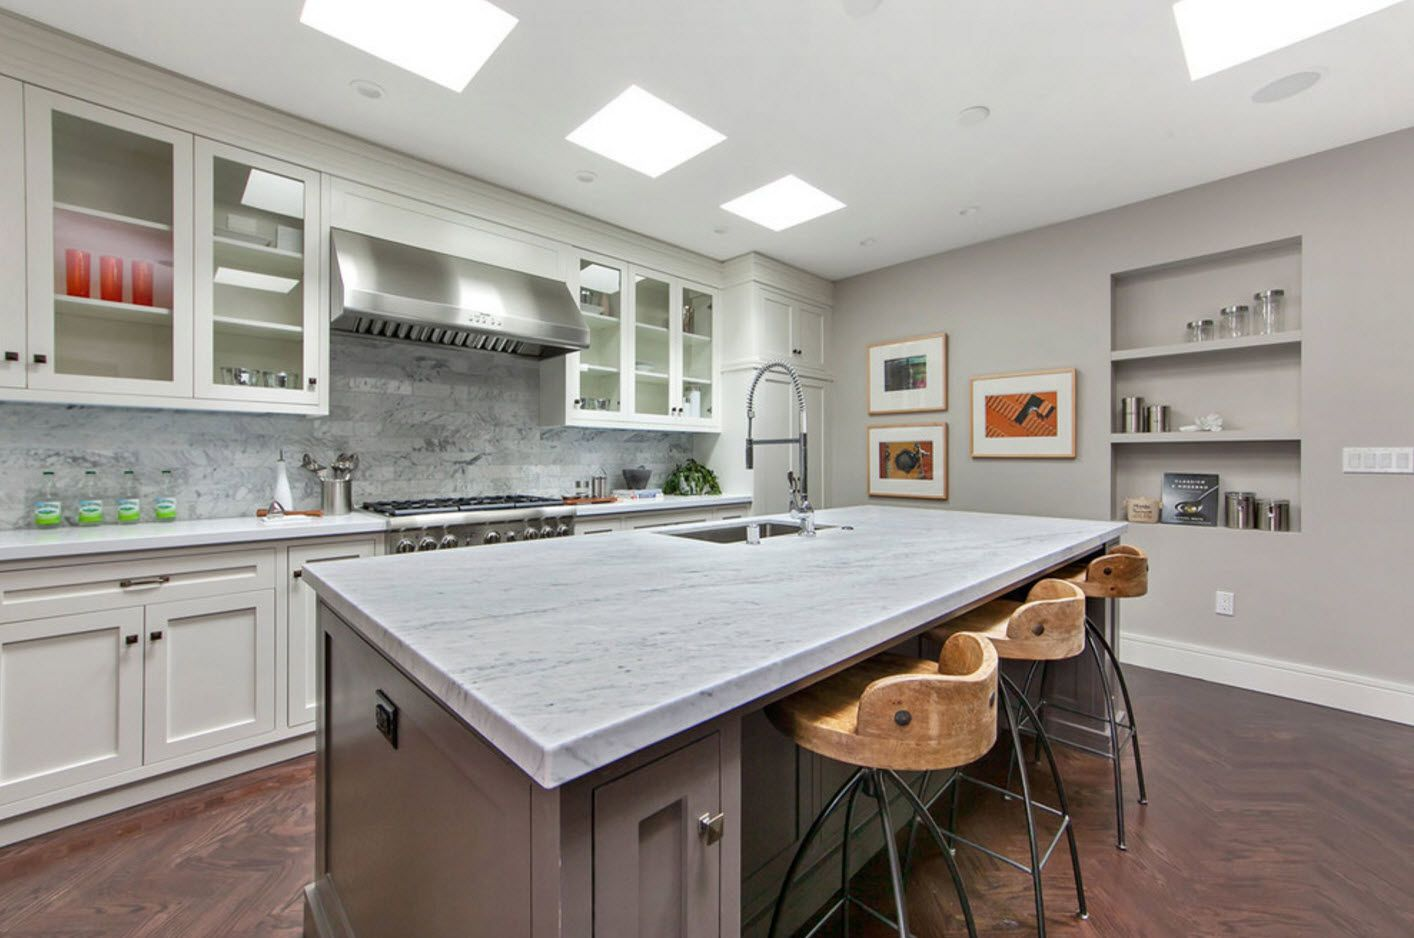 100+ Photo Design Ideas of Modern, Comfortable IKEA Kitchens. White and gray color palette with white ceiling